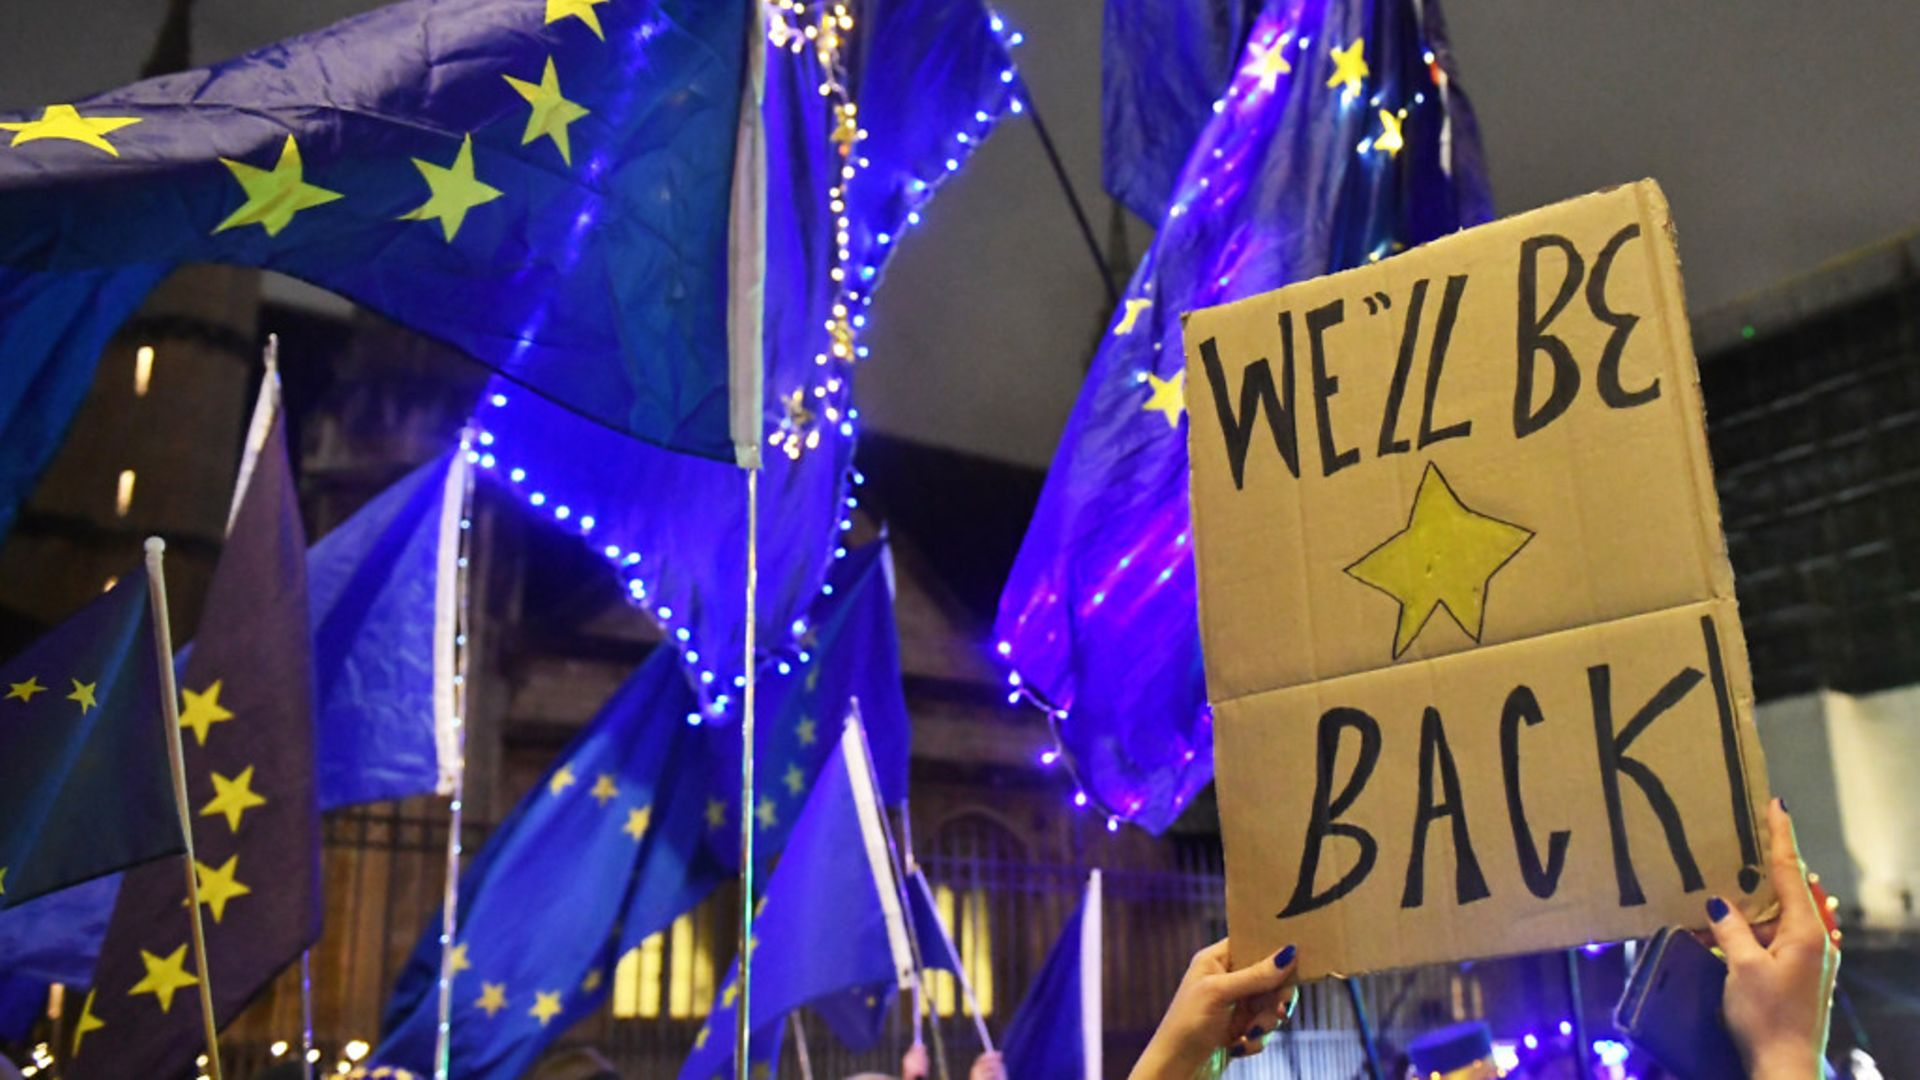 Pro-EU campaigners outside the Houses of Parliament ahead of Brexit day earlier this year - Credit: PA Wire/PA Images